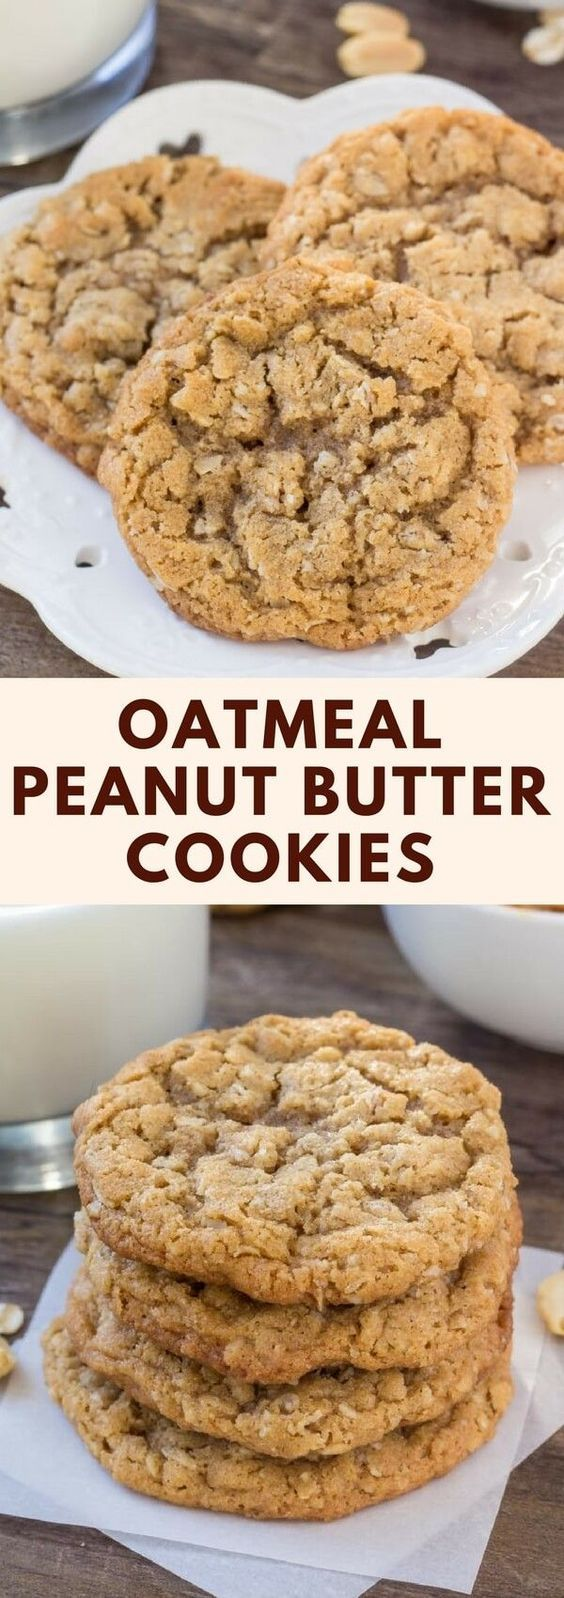 Peanut Butter Oatmeal Cookies #peanut #butter #oatmeal #cookies #cookierecipes #dessert #dessertrecipes #easydessertrecipes Desserts, Healthy Food, Easy Recipes, Dinner, Lauch, Delicious, Easy, Holidays Recipe, Special Diet, World Cuisine, Cake, Grill, Appetizers, Healthy Recipes, Drinks, Cooking Method, Italian Recipes, Meat, Vegan Recipes, Cookies, Pasta Recipes, Fruit, Salad, Soup Appetizers, Non Alcoholic Drinks, Meal Planning, Vegetables, Soup, Pastry, Chocolate, Dairy, Alcoholic Drinks, Bulgur Salad, Baking, Snacks, Beef Recipes, Meat Appetizers, Mexican Recipes, Bread, Asian Recipes, Seafood Appetizers, Muffins, Breakfast And Brunch, Condiments, Cupcakes, Cheese, Chicken Recipes, Pie, Coffee, No Bake Desserts, Healthy Snacks, Seafood, Grain, Lunches Dinners, Mexican, Quick Bread, Liquor